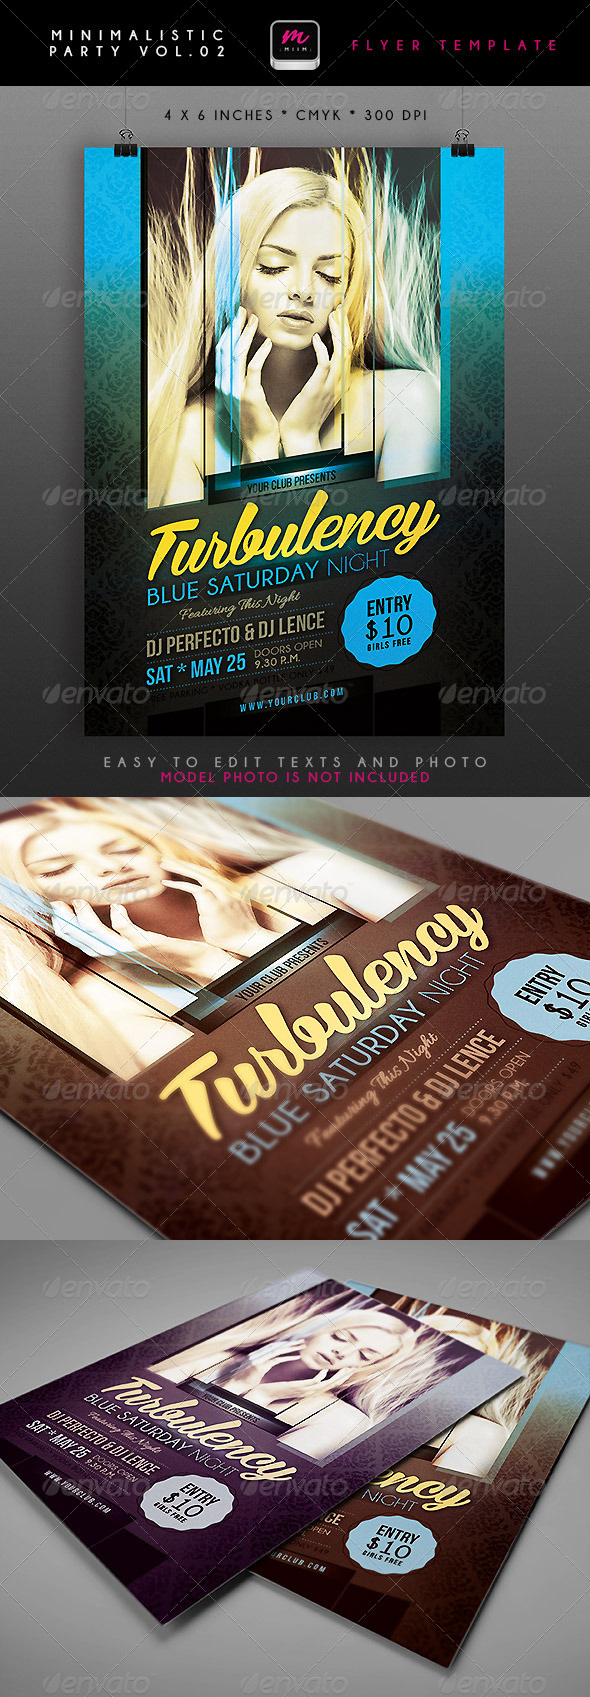 GraphicRiver Minimalistic Party Flyer 2 4696584